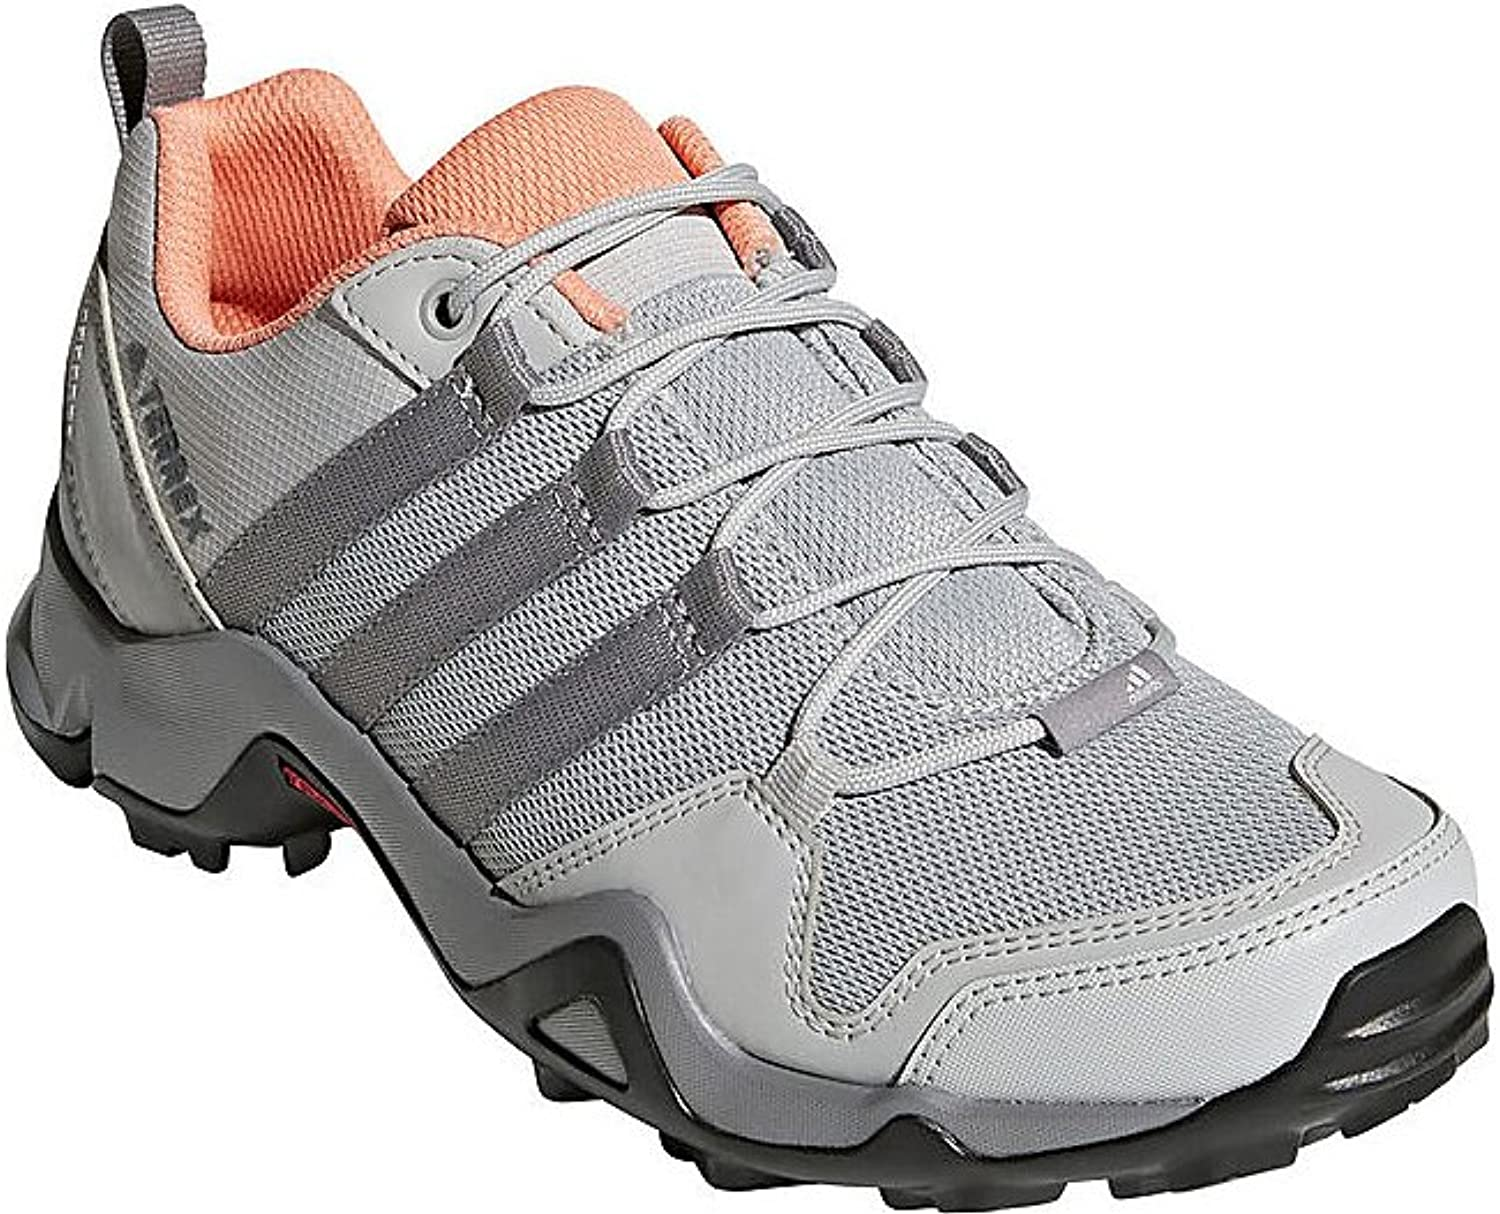 Adidas Outdoor Women's AX2R Hiking shoes